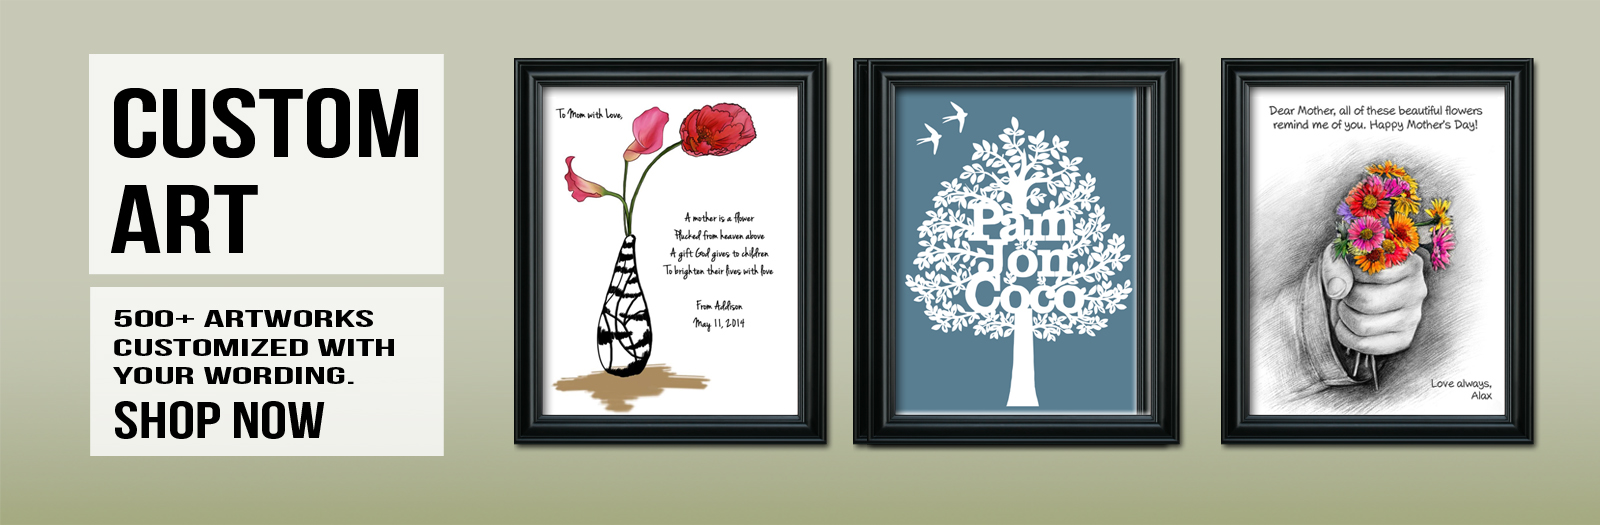 Picture to art, photo to art - personalized art